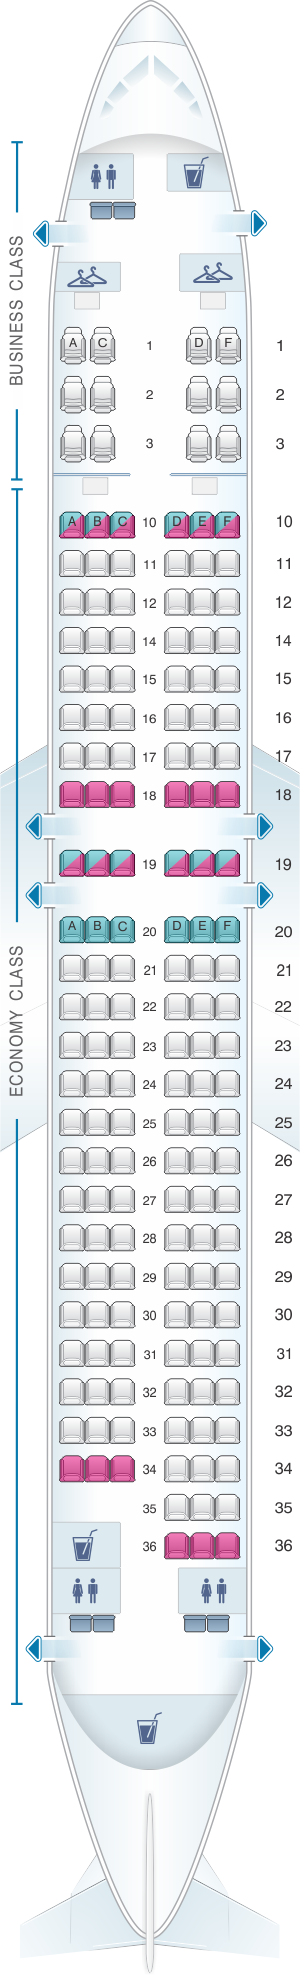 Seat map for Oman Air Boeing B737 800 V2